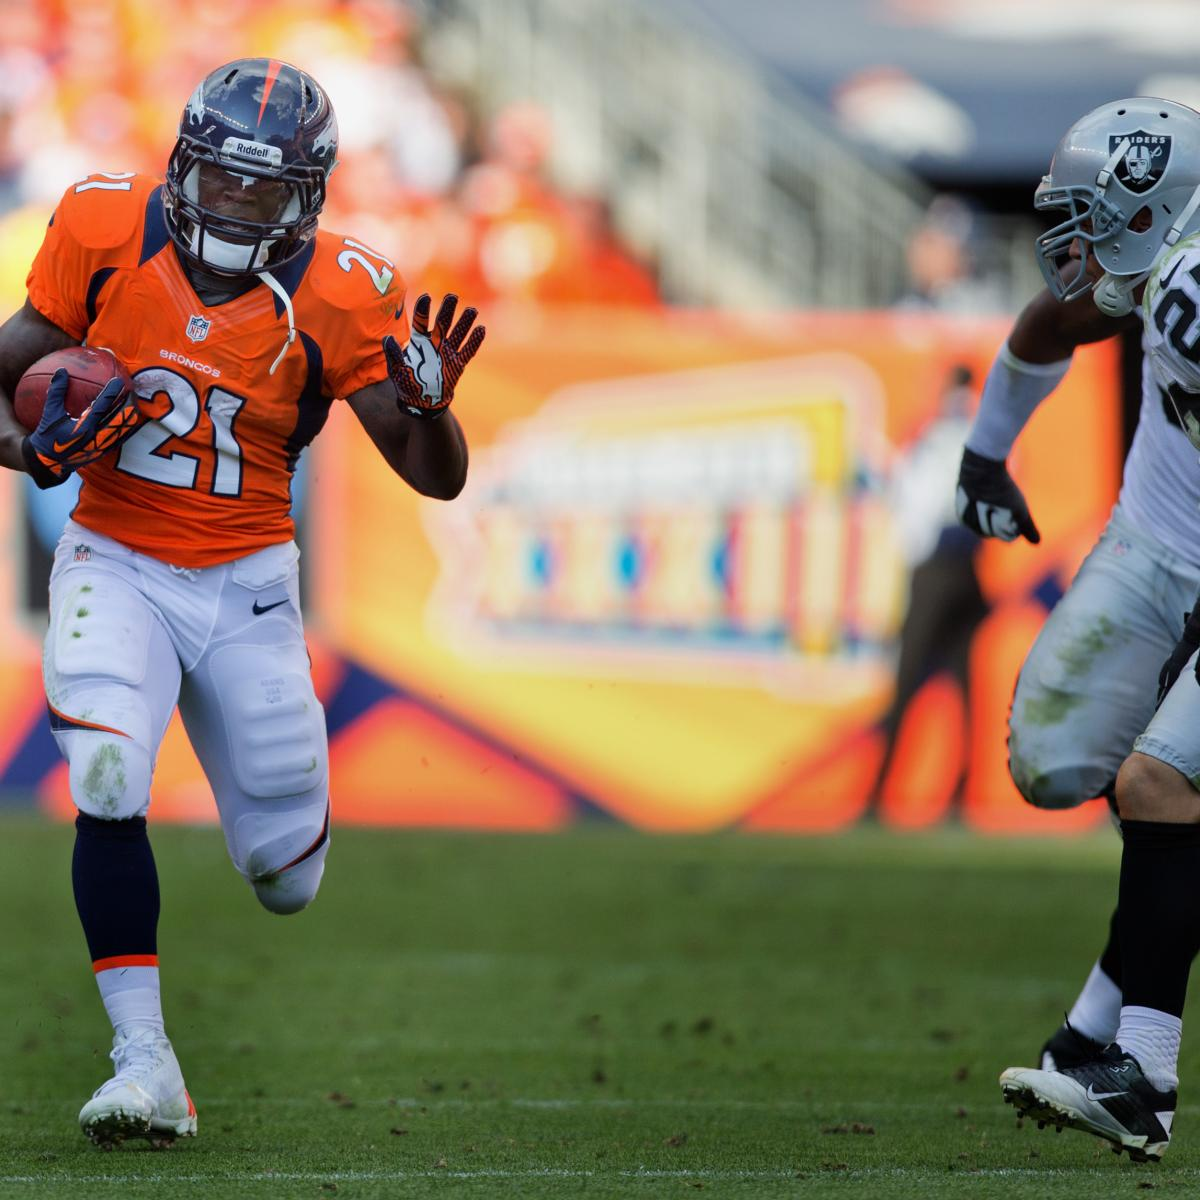 Denver To Hawaii: 10 Denver Broncos Players Who Will Surprise In Training